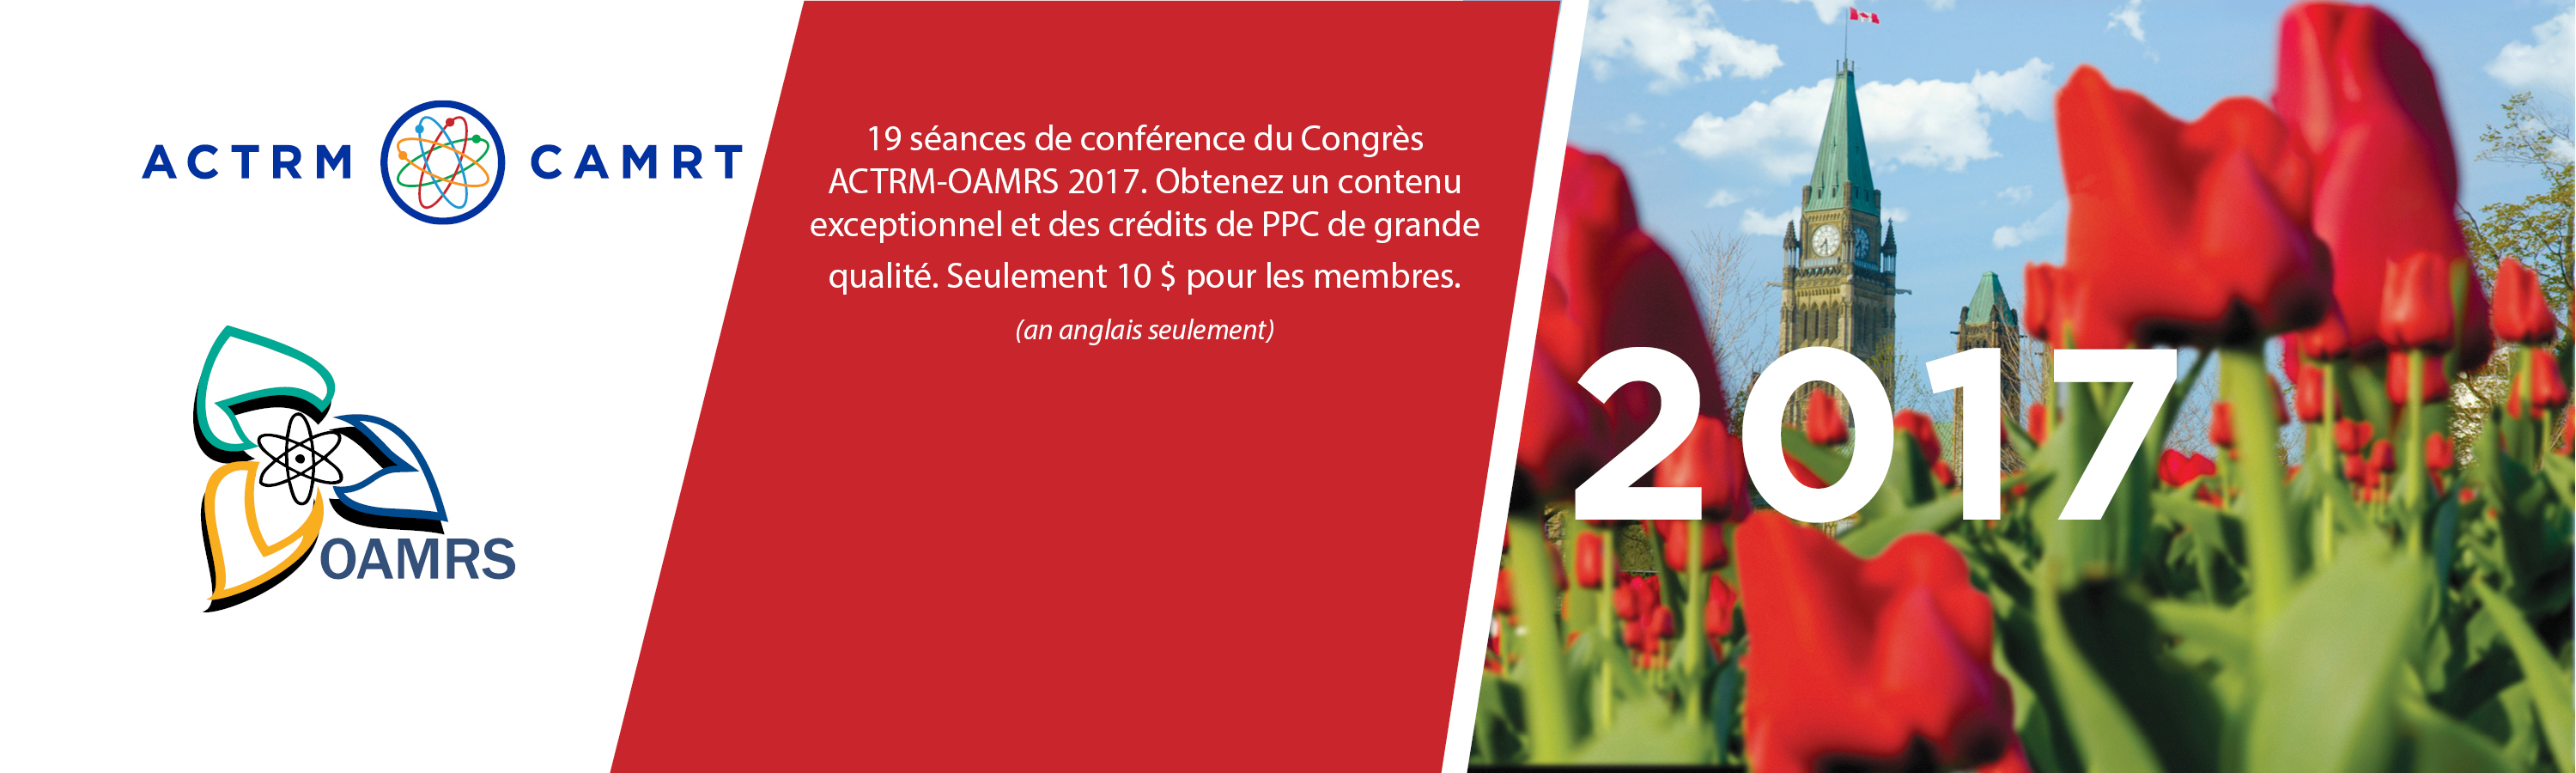 Conference-Sessions-banner-french-2